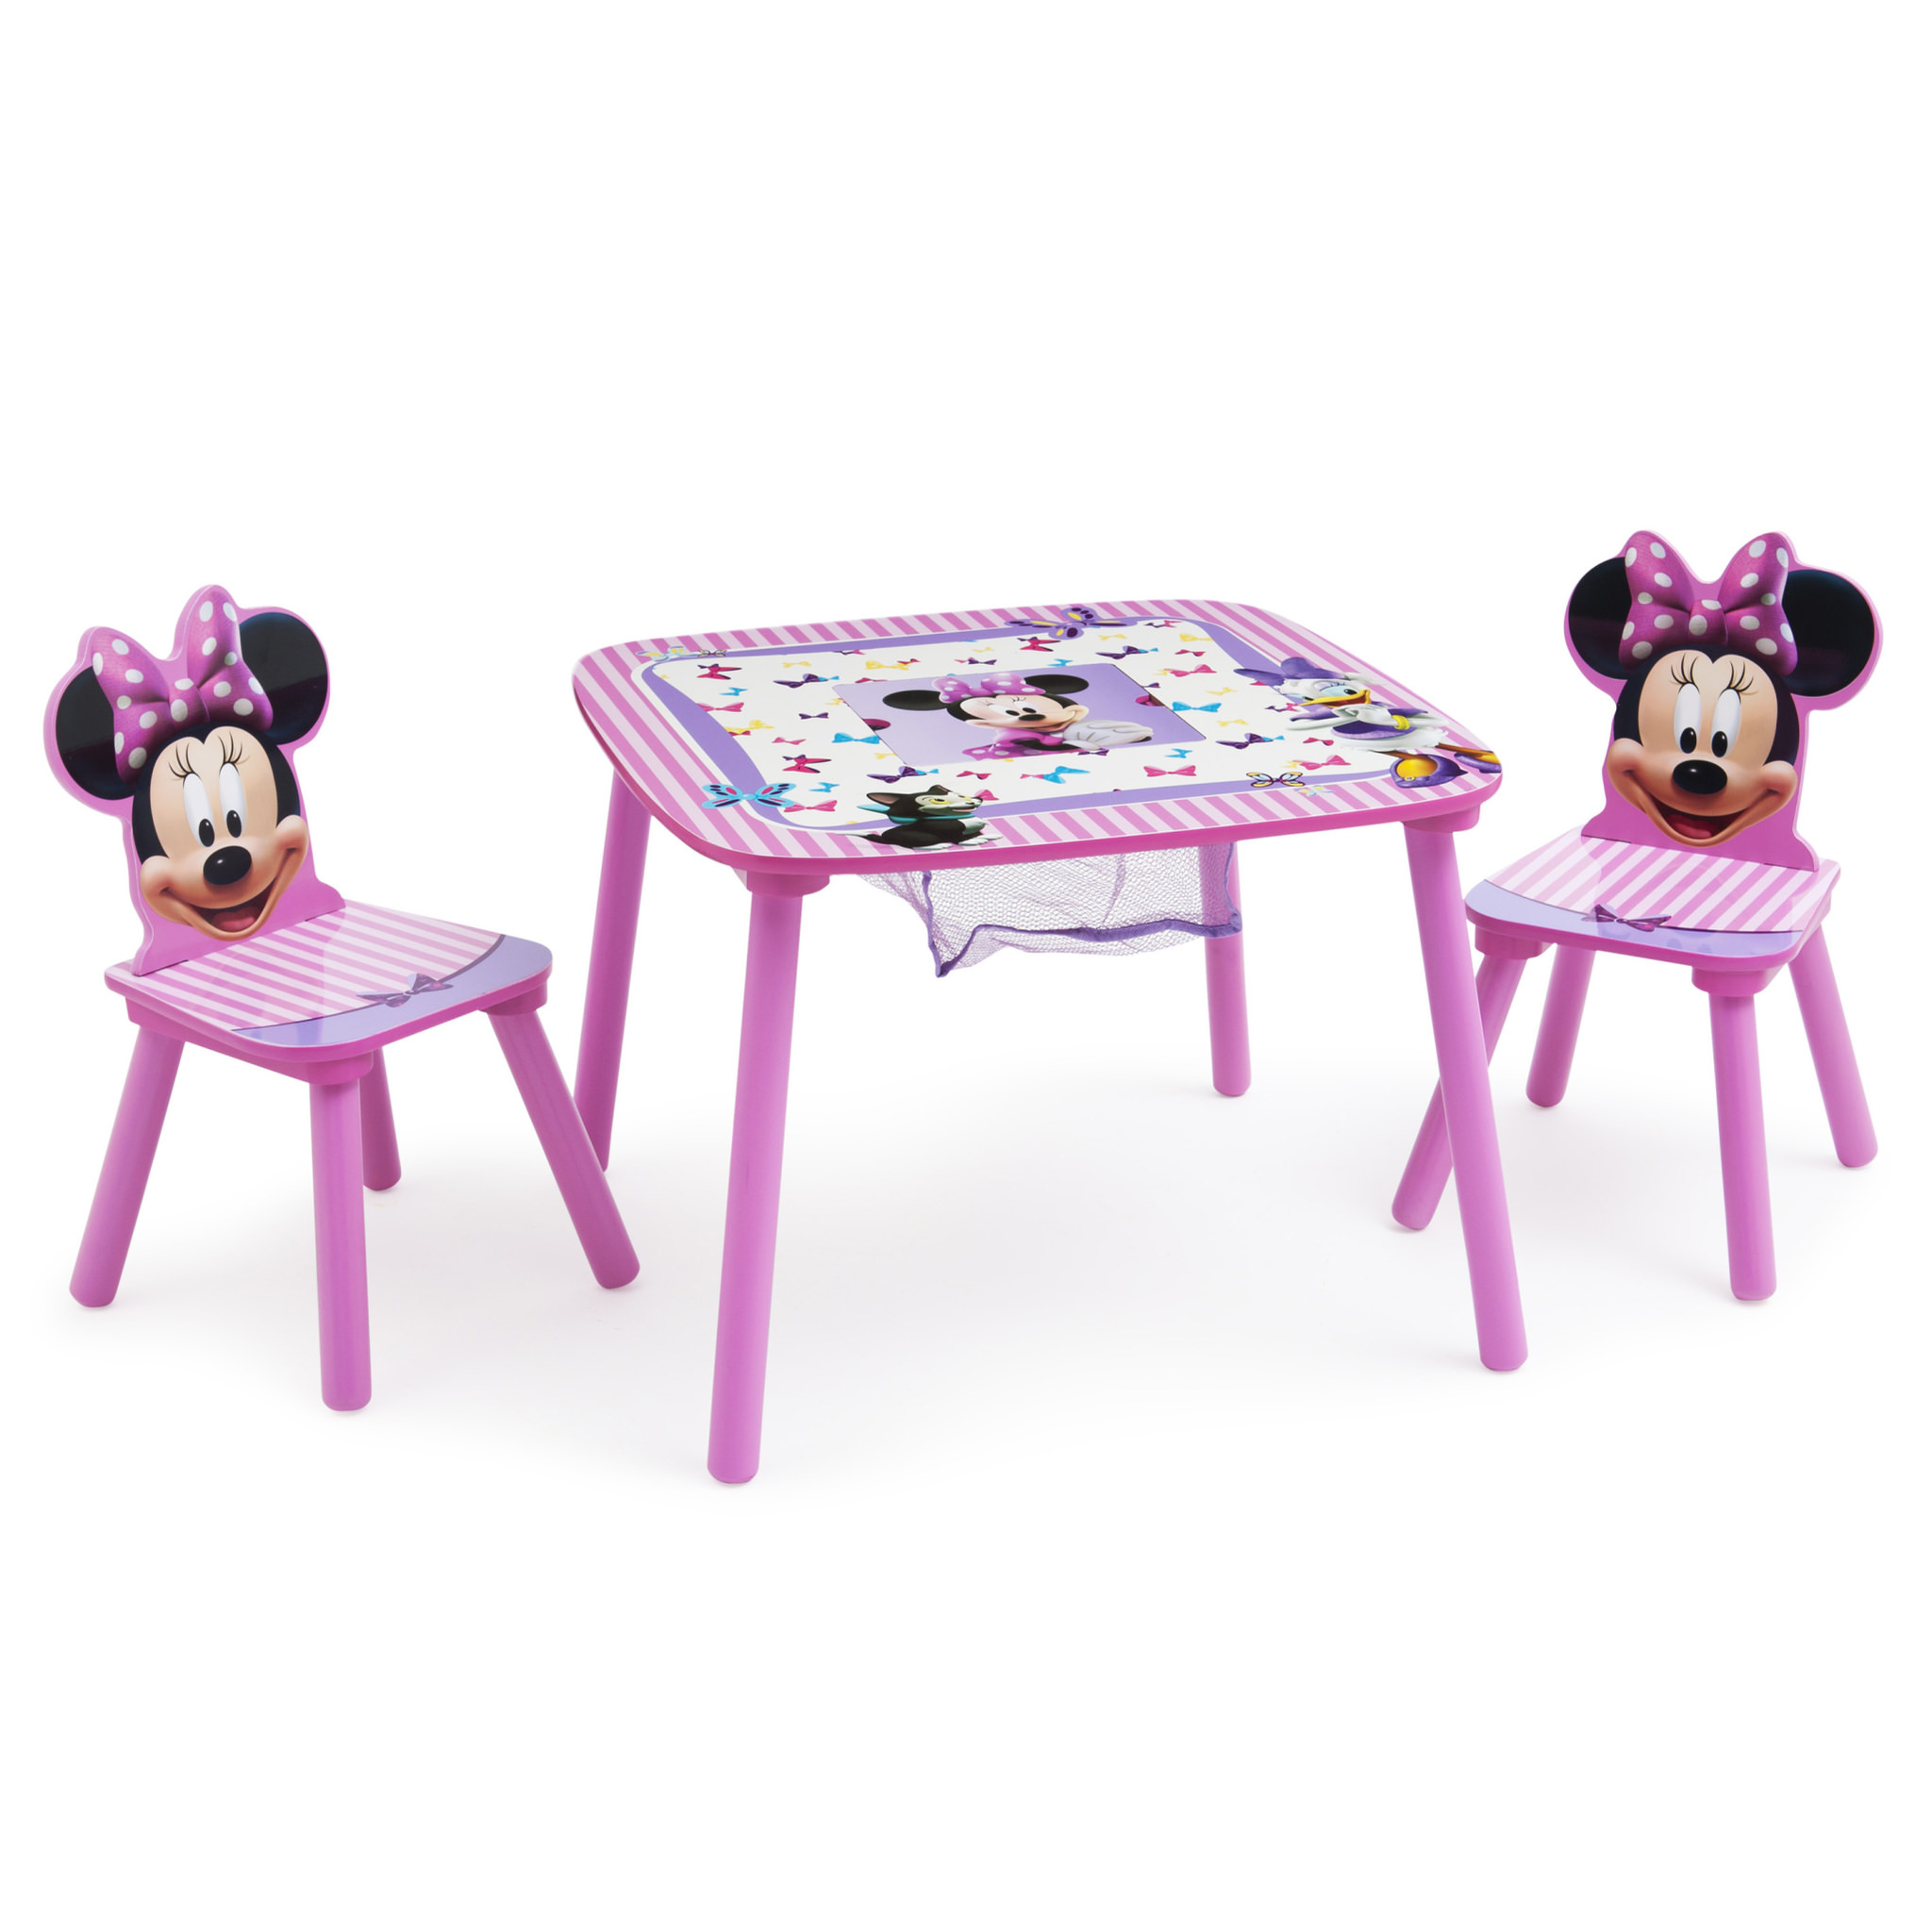 Minnie Mouse Toddler Table and Chair Set with Storage